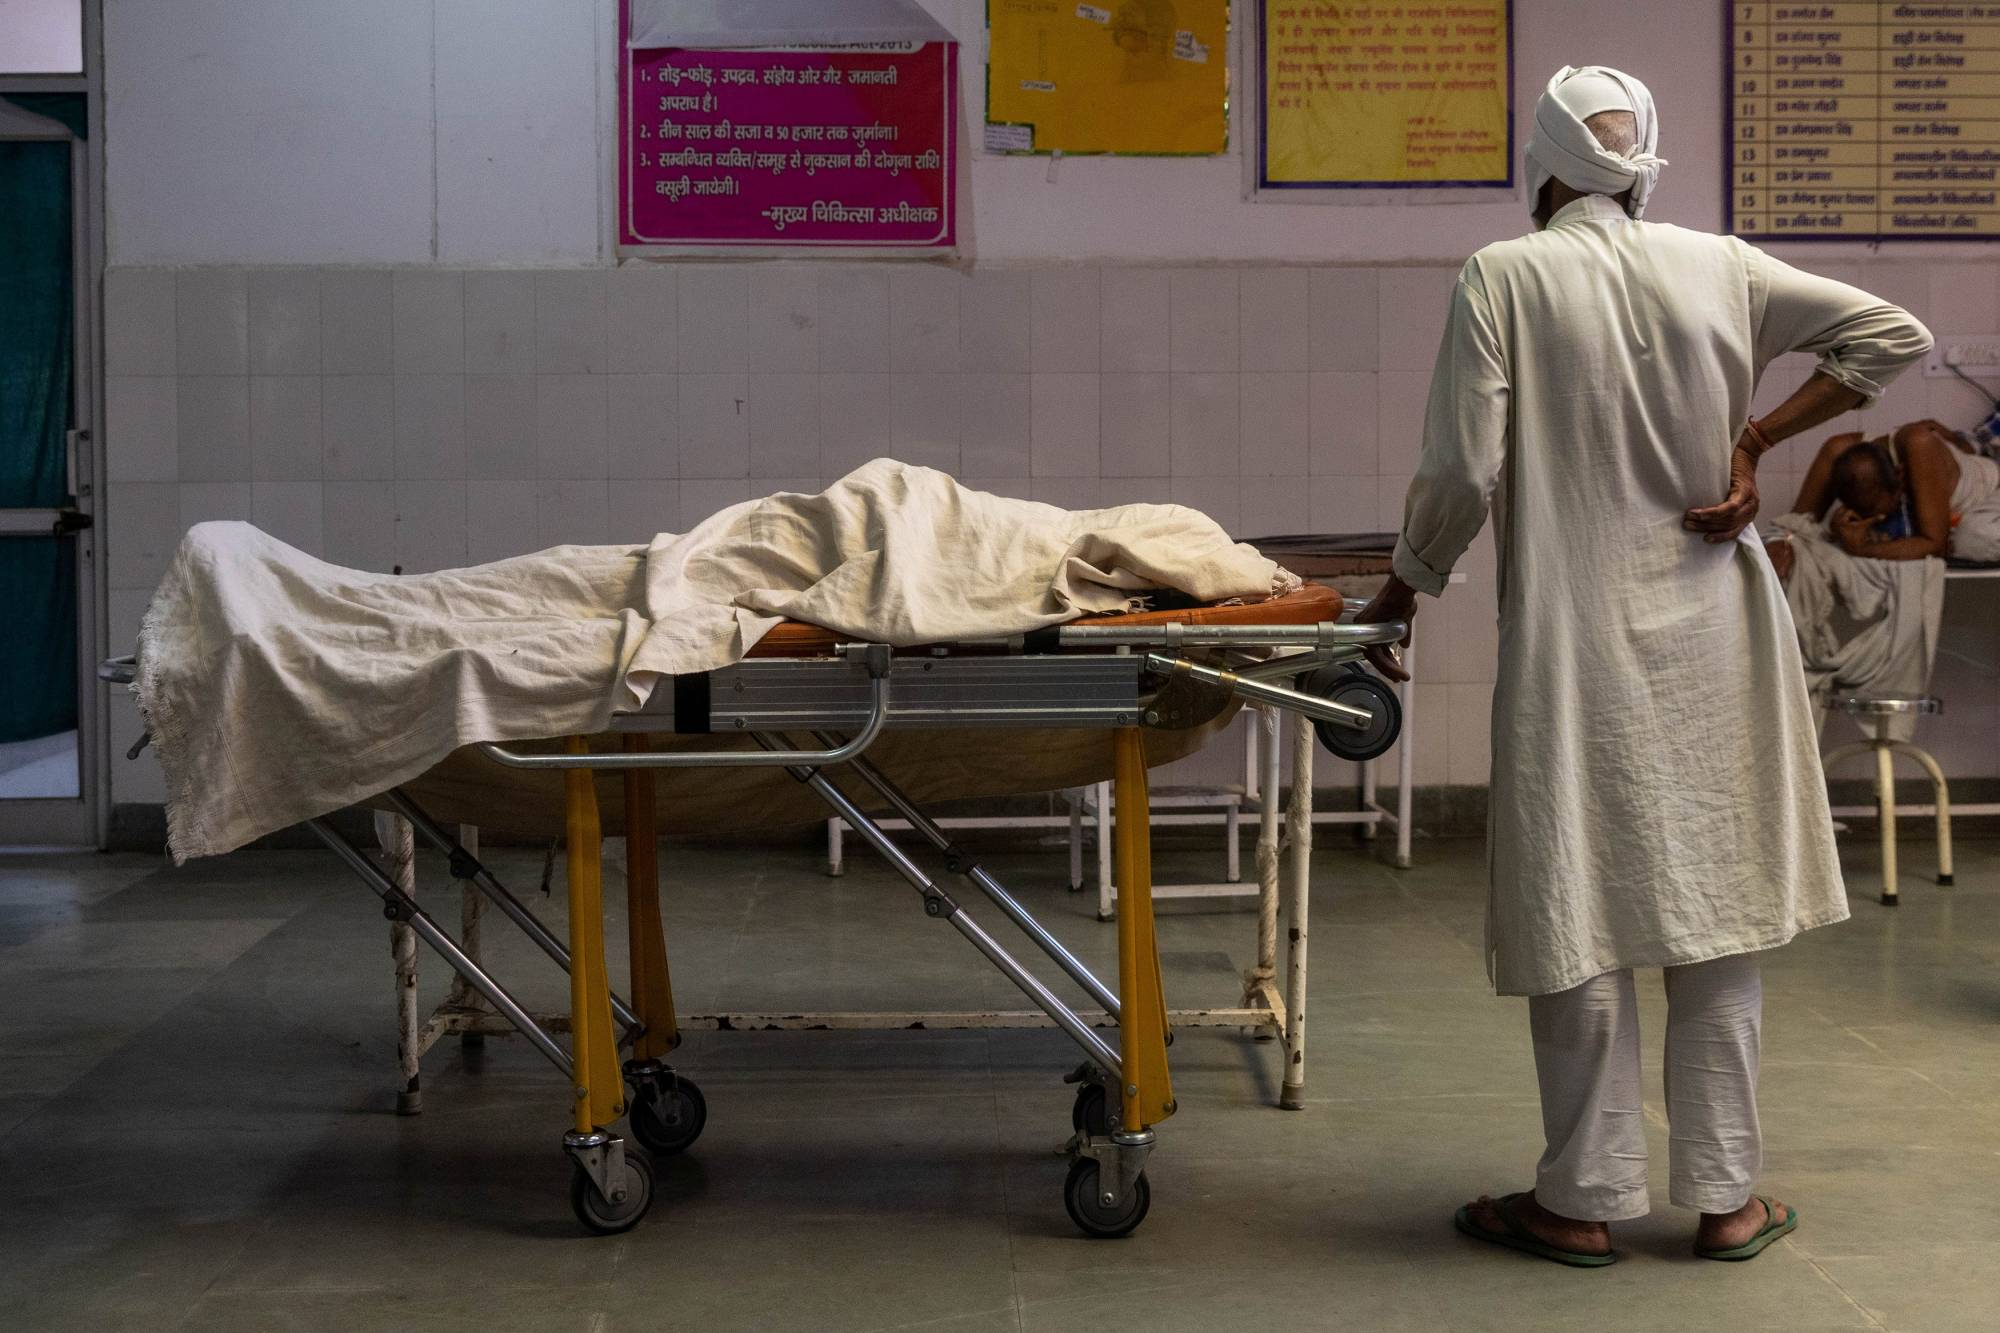 A man stands next to the body of his wife, who died due to breathing difficulties, inside an emergency ward of a government-run hospital in Bijnor, India, on Tuesday.  | REUTERS